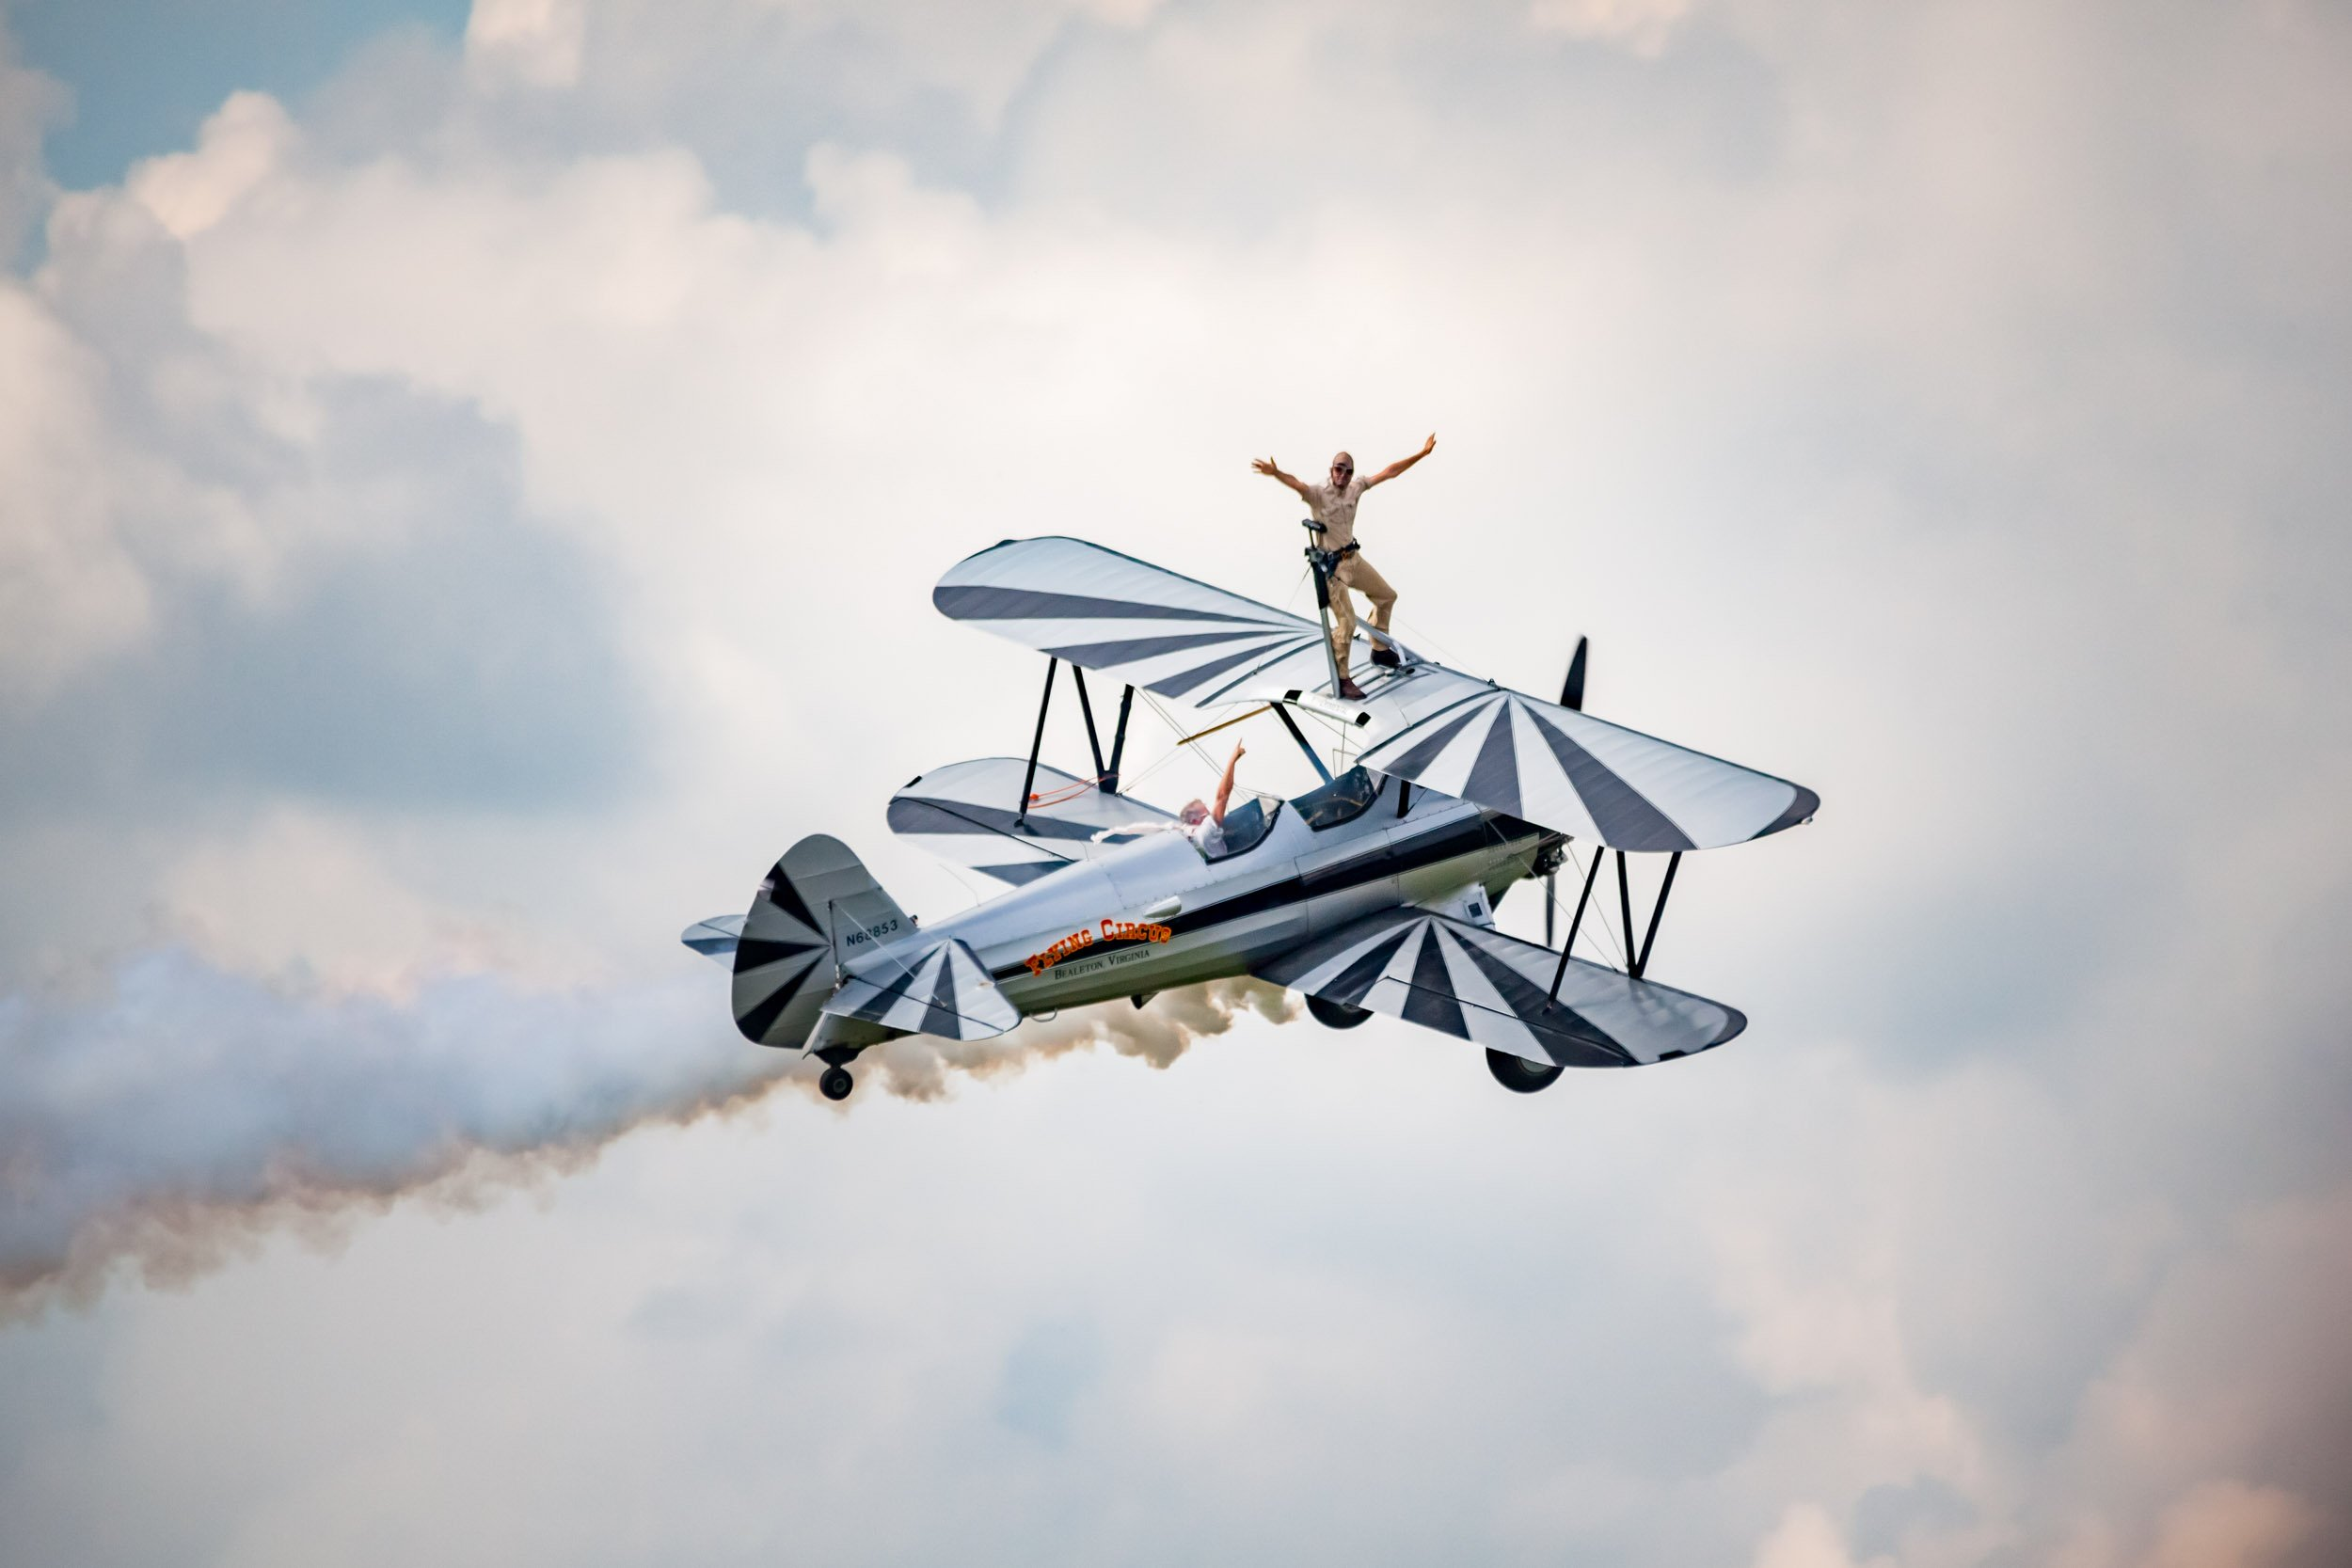 stuntman standing on a biplane wing in flight